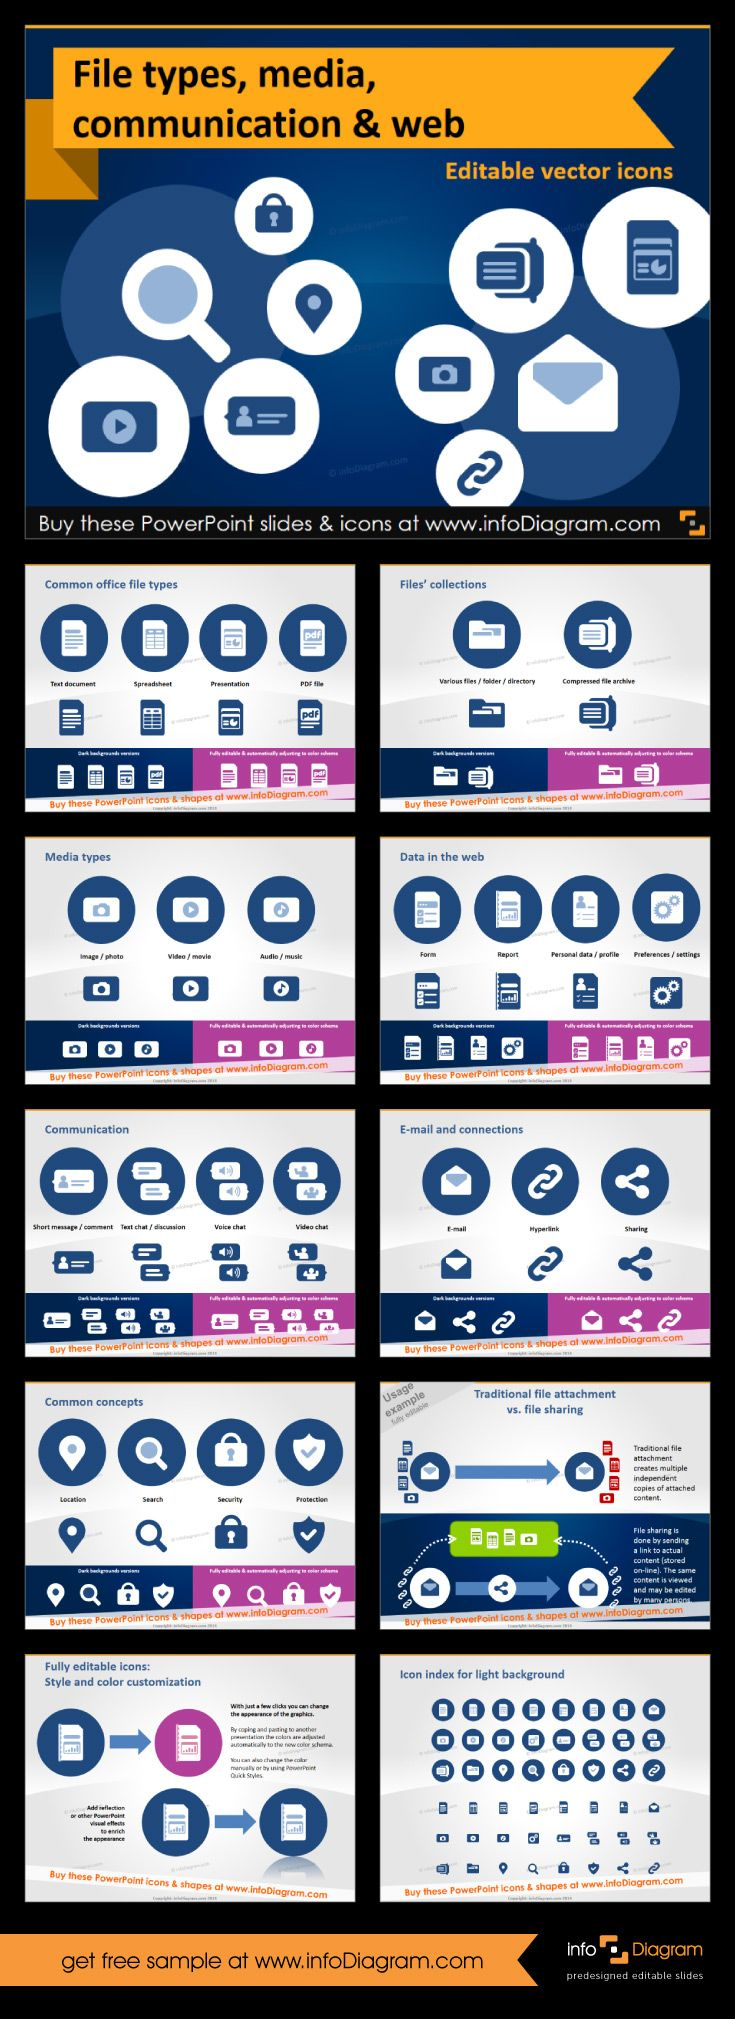 Editable elements for #PowerPoint to create #presenations with file types of different types: documents, audio, video and pictures. Extra icons to visualise email, connectivity, cloud, web links and more. #Flat style. #template #cliparts